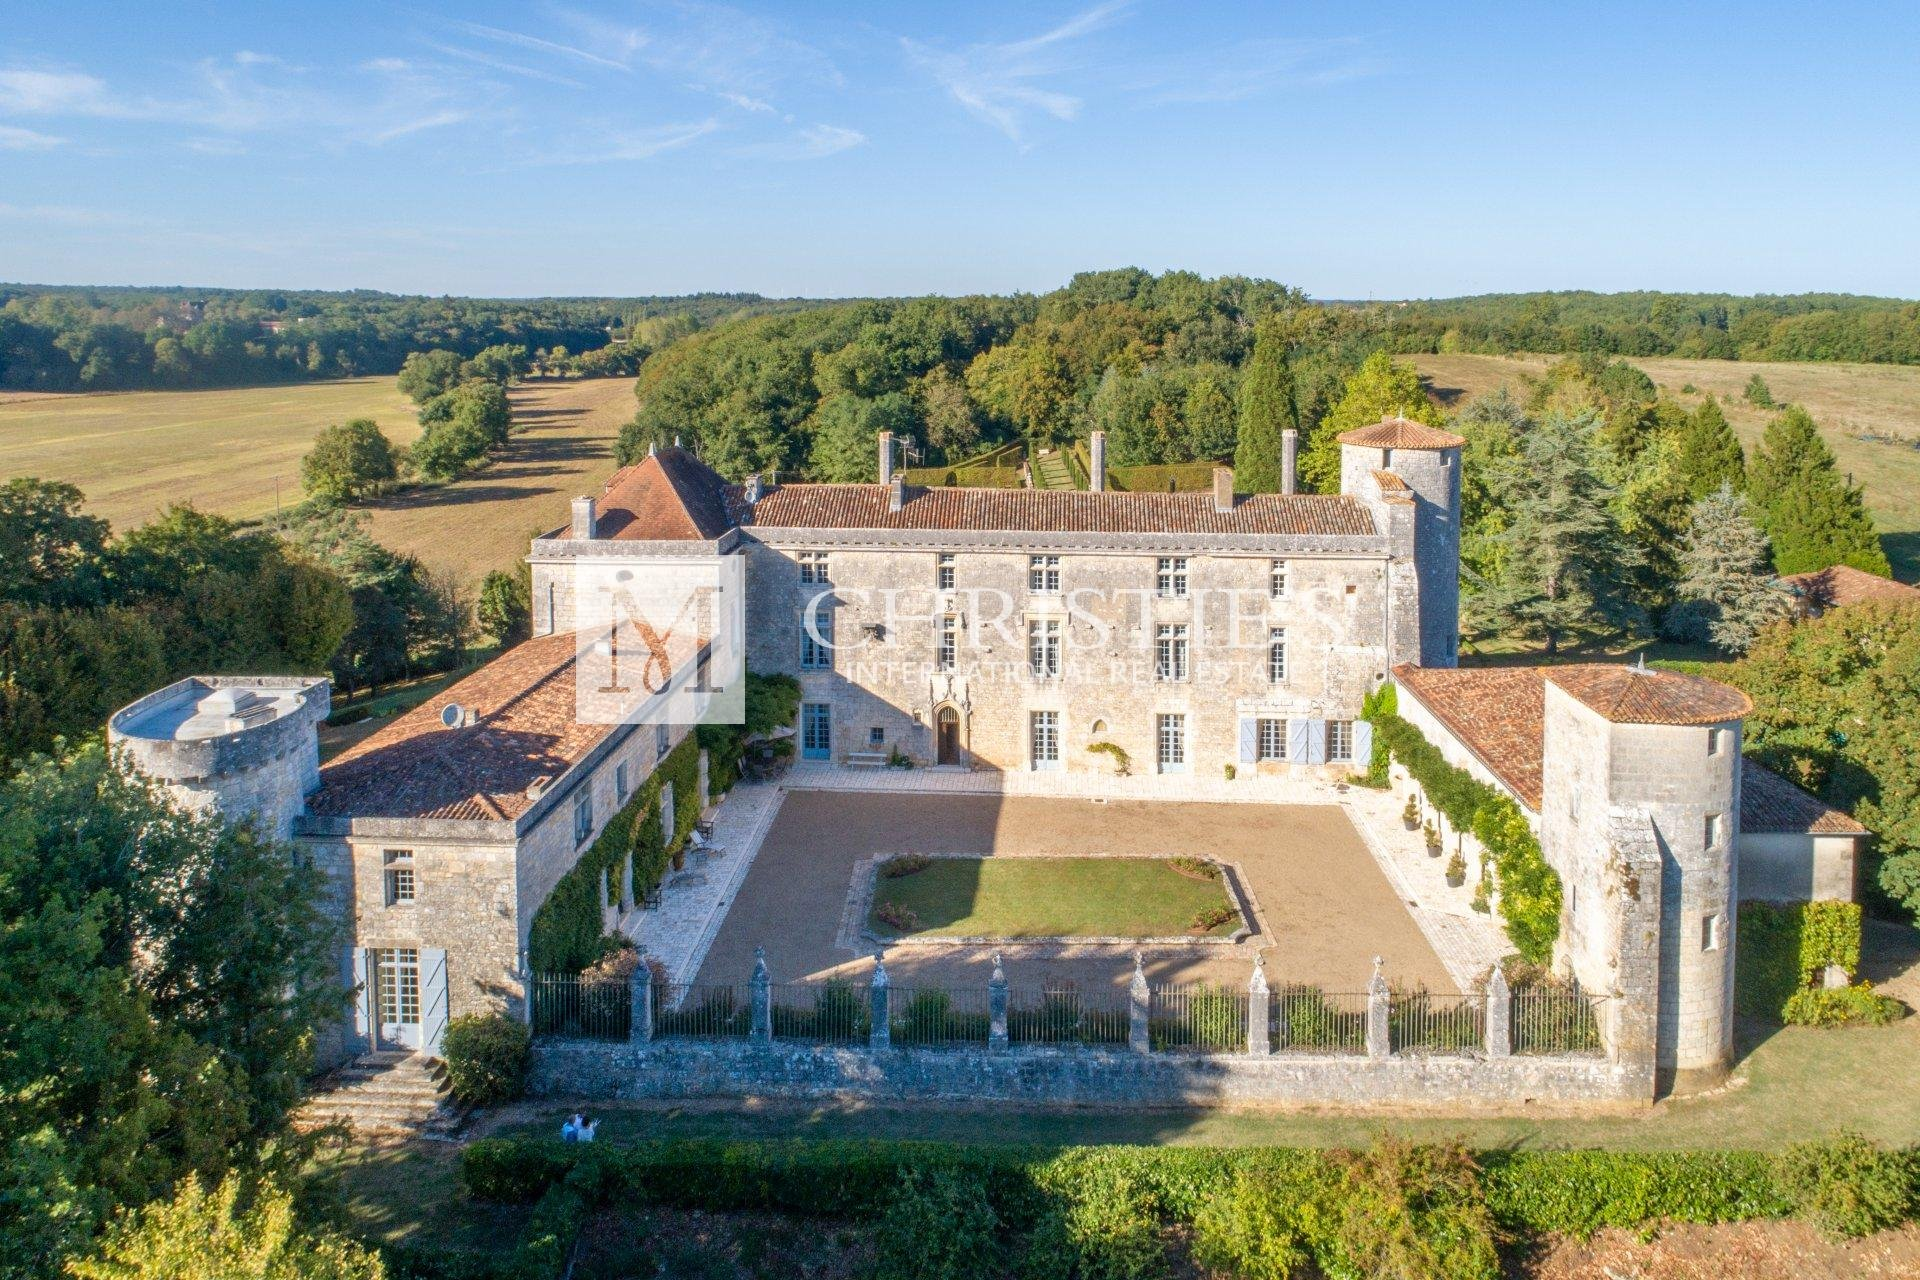 Magnificent 13th and 15th century Chateau near Angoulême, Charente